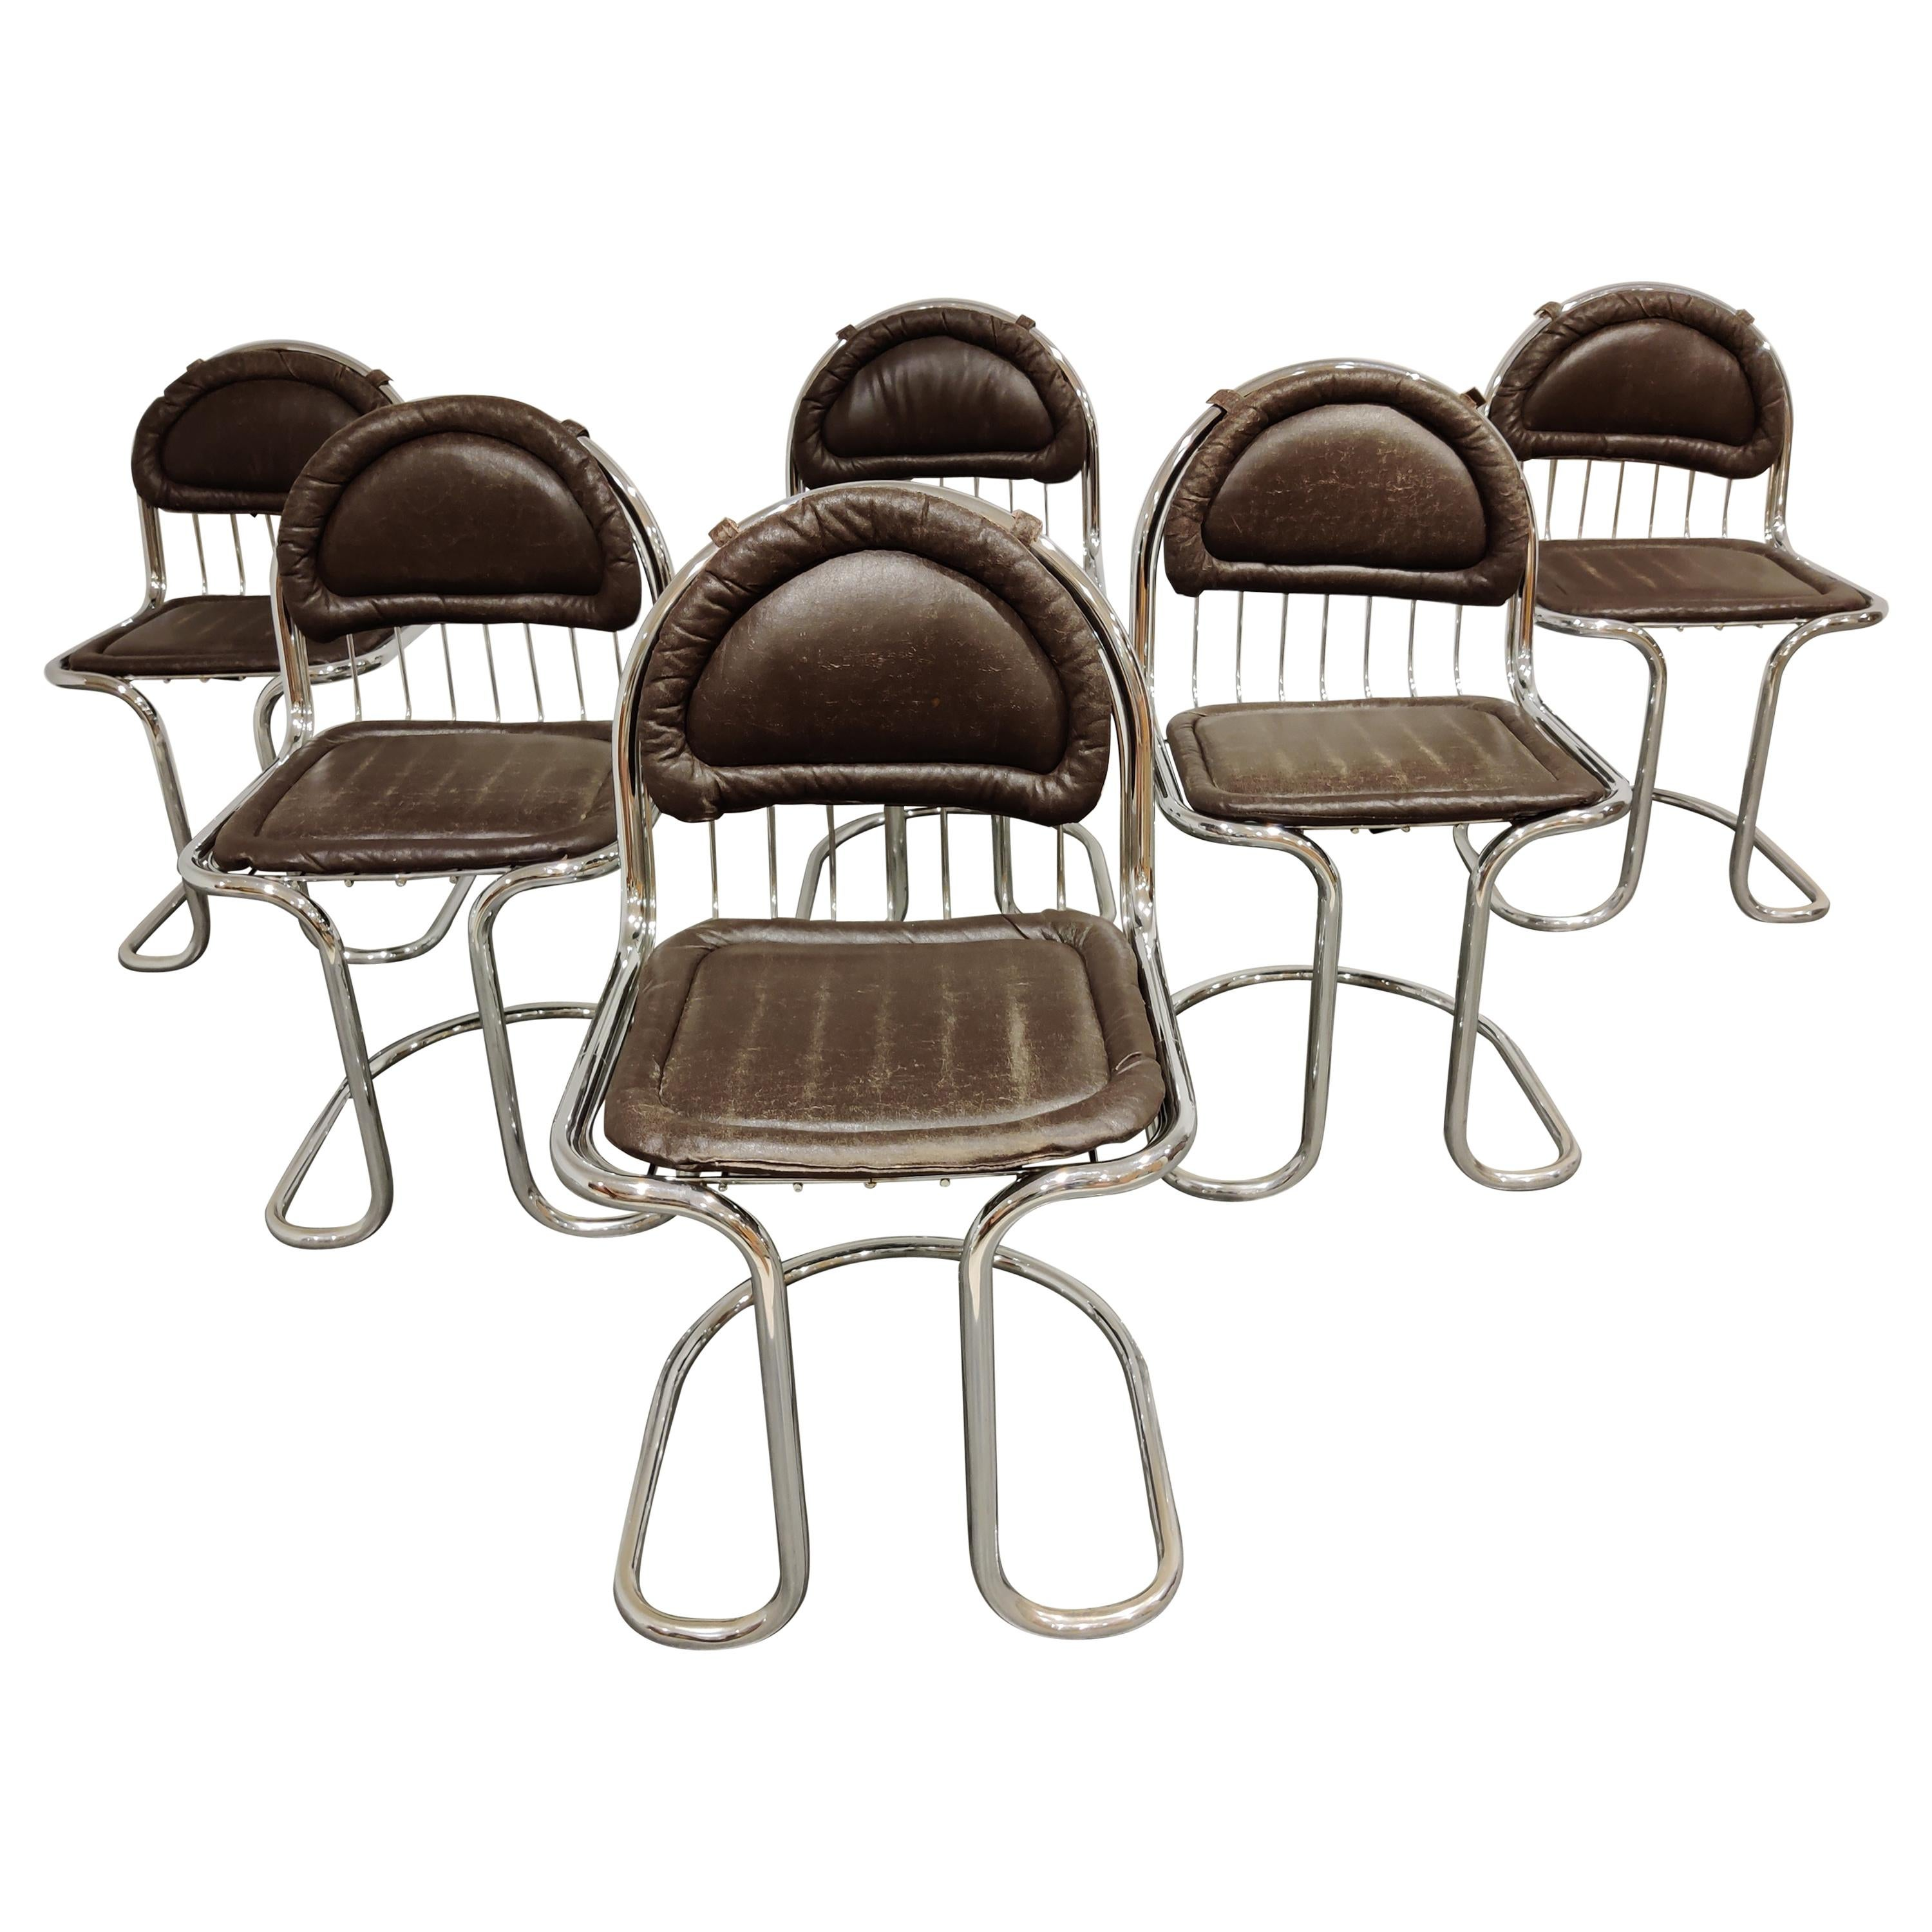 Vintage Chrome and Leather Cantilever Dining Chairs, 1970s